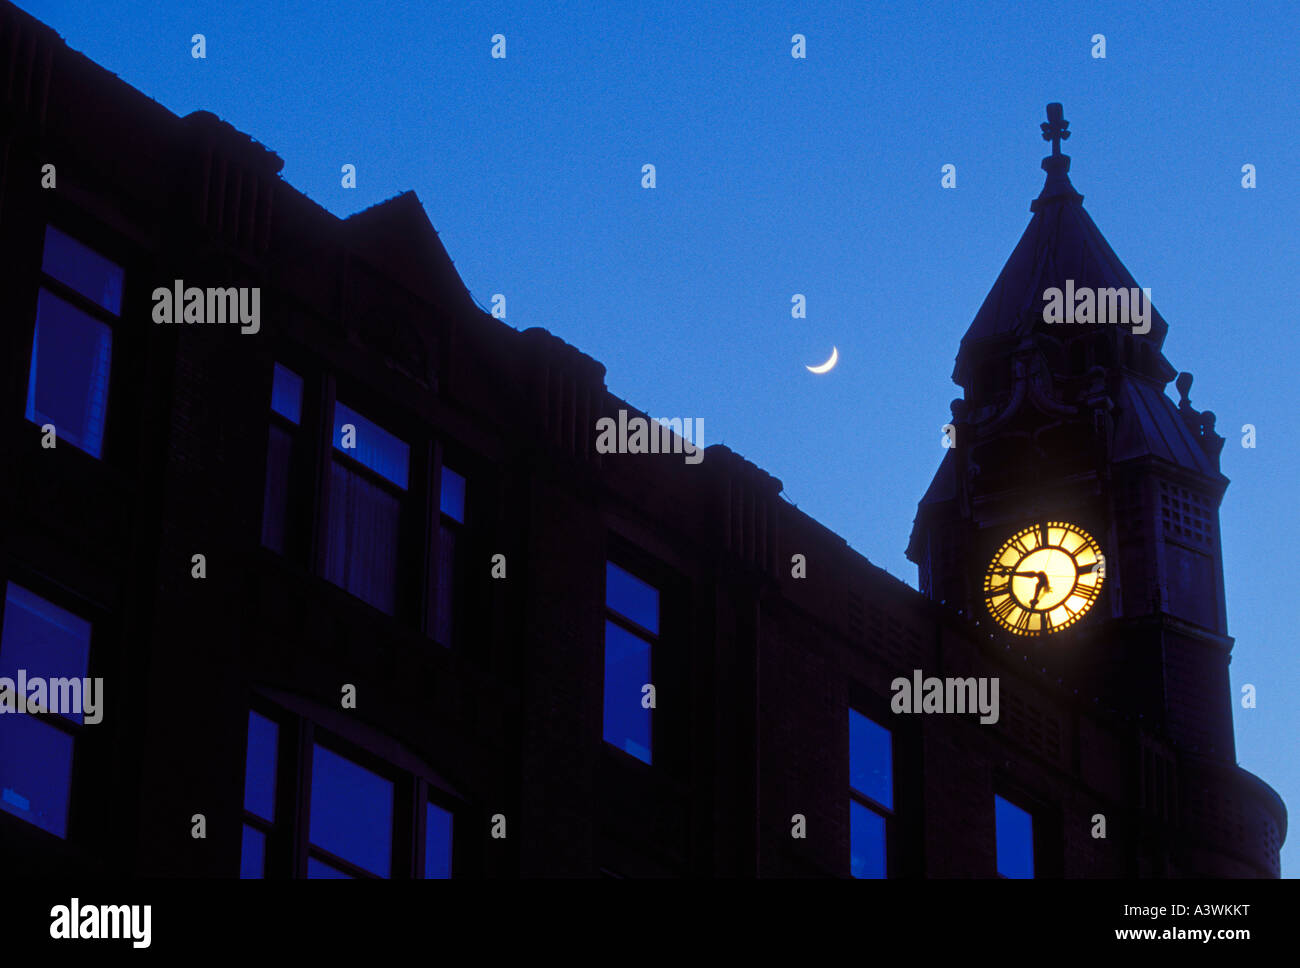 The historic Savings Bank building in downtown Marquette Mich with a crescent moon at dusk - Stock Image